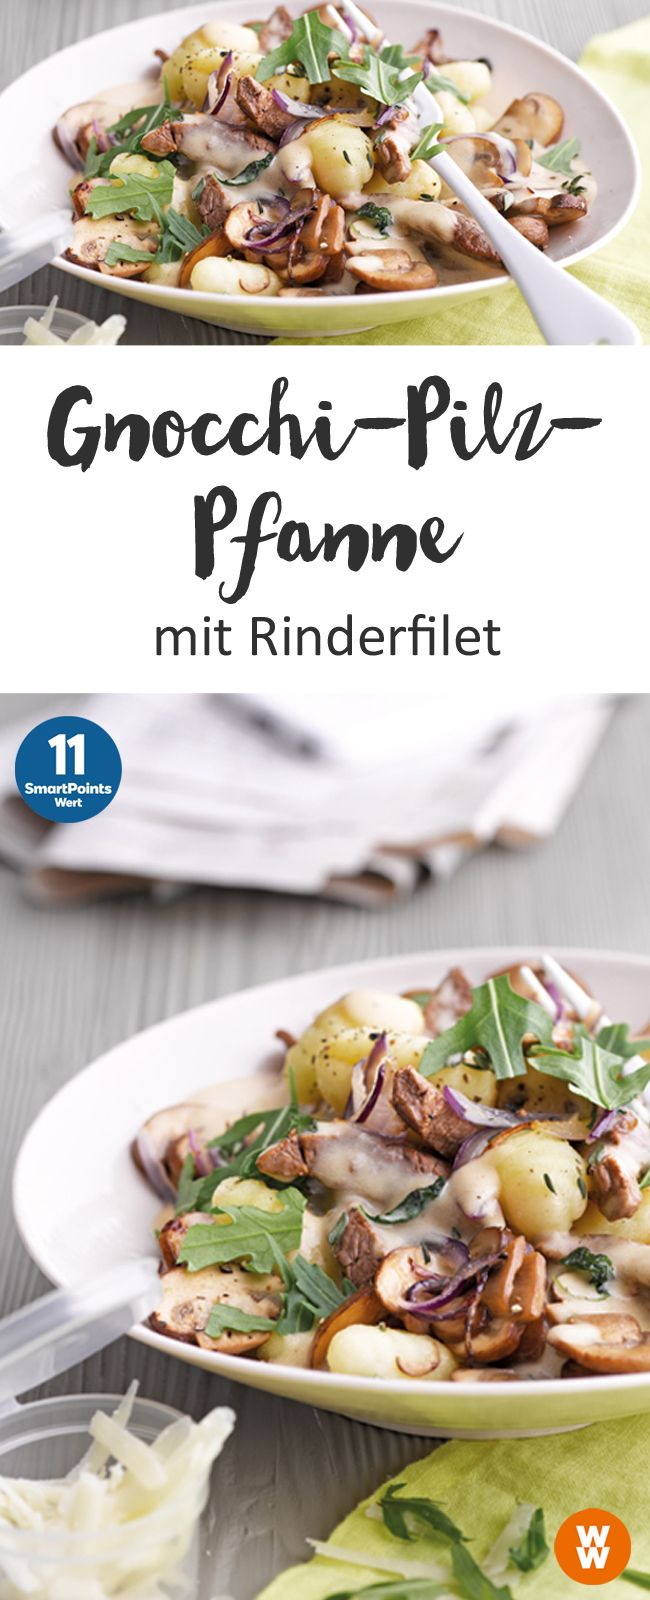 Gnocchi-Pilz-Pfanne | 11 SmartPoints/Portion, Weight Watchers, fertig in 30 min.